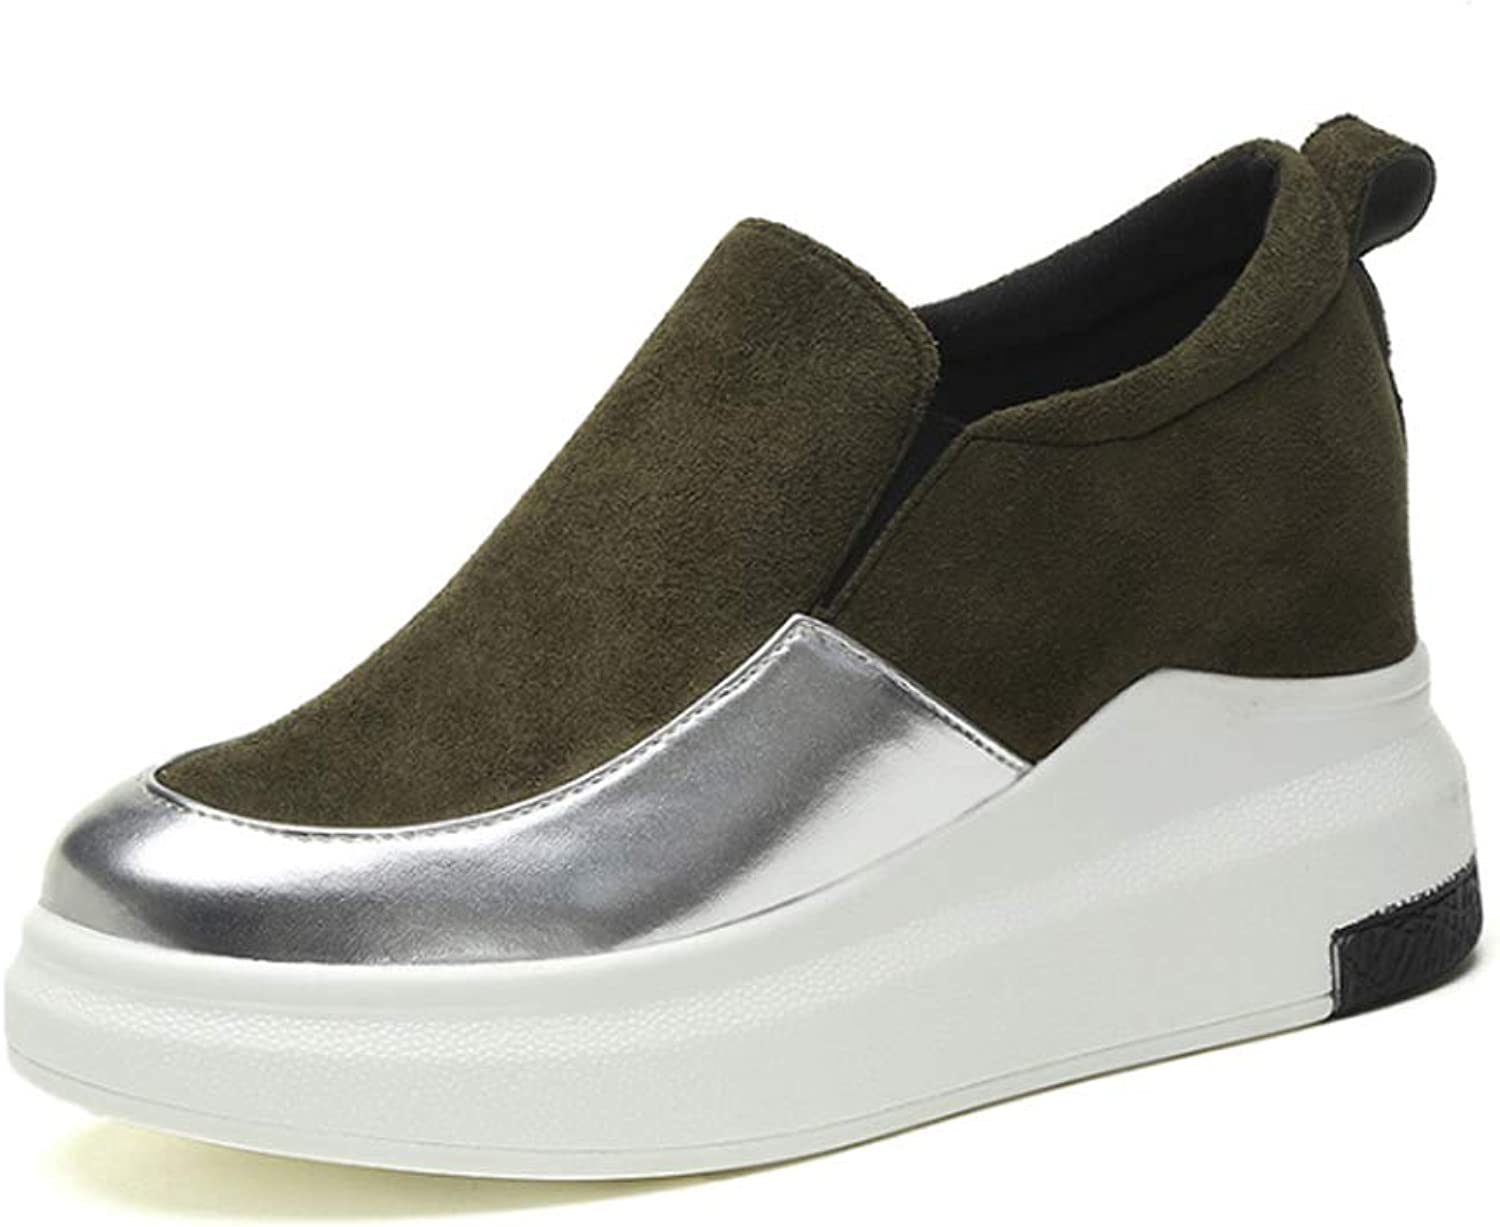 THBM Women Wedges Platforms Round Inside Heighten Slip-On Pumps Casual Thick shoes